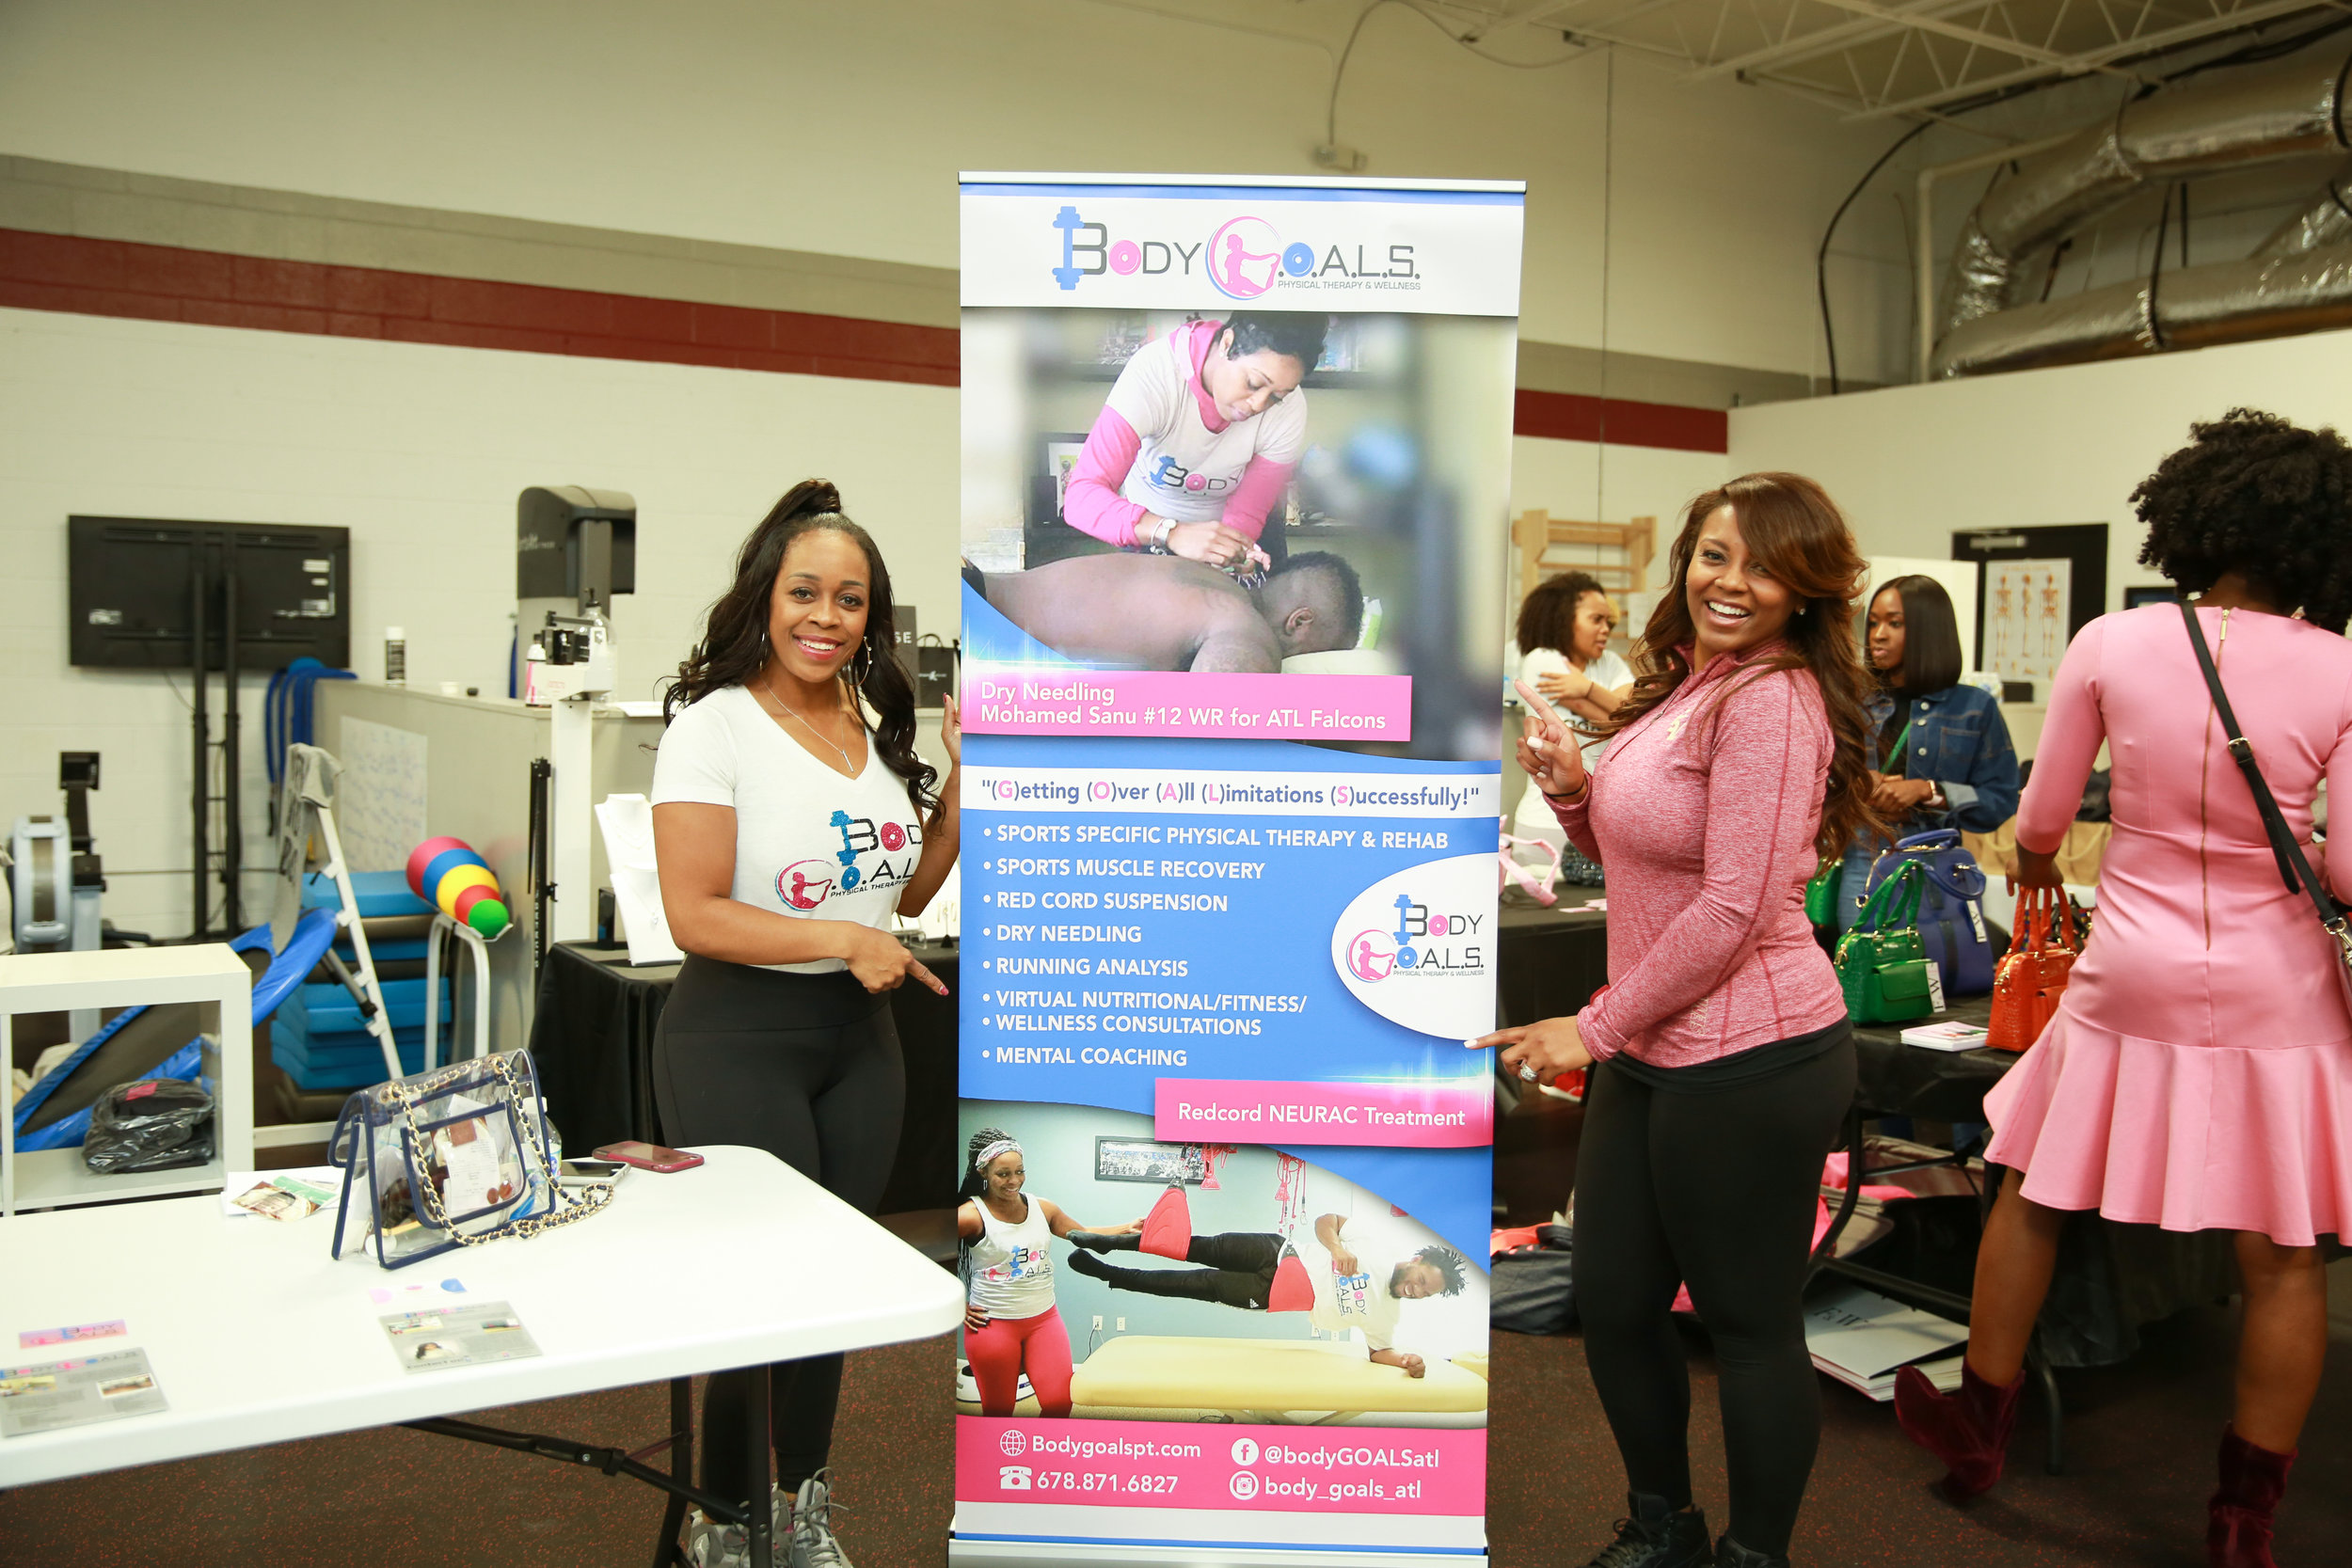 Quiana Fluellen, owner of BODY G.O.A.L.S, and Tenisha Patterson-Brown of Definitive Sports Group